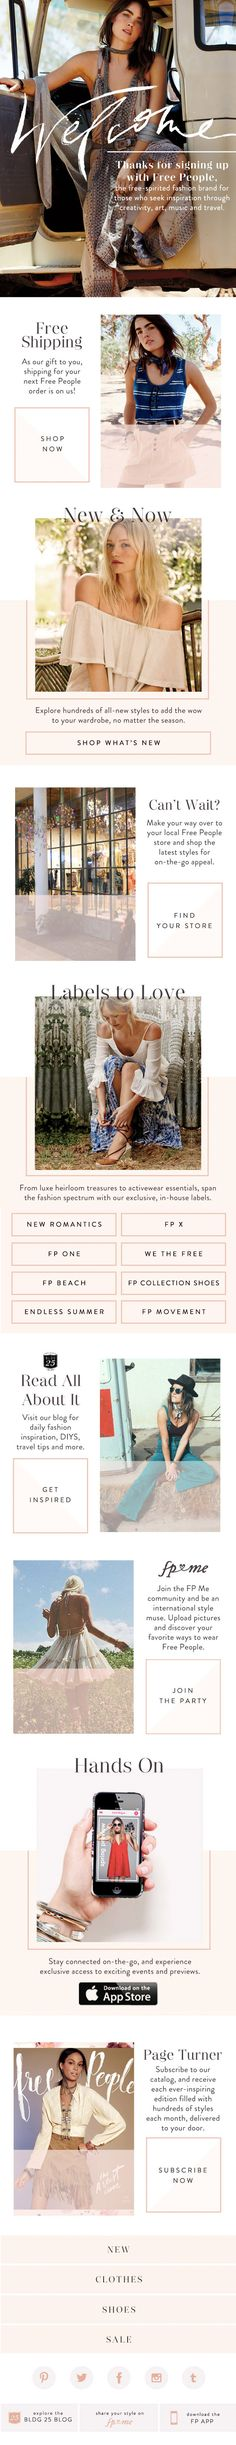 Free People Welcome Email Newsletter Design